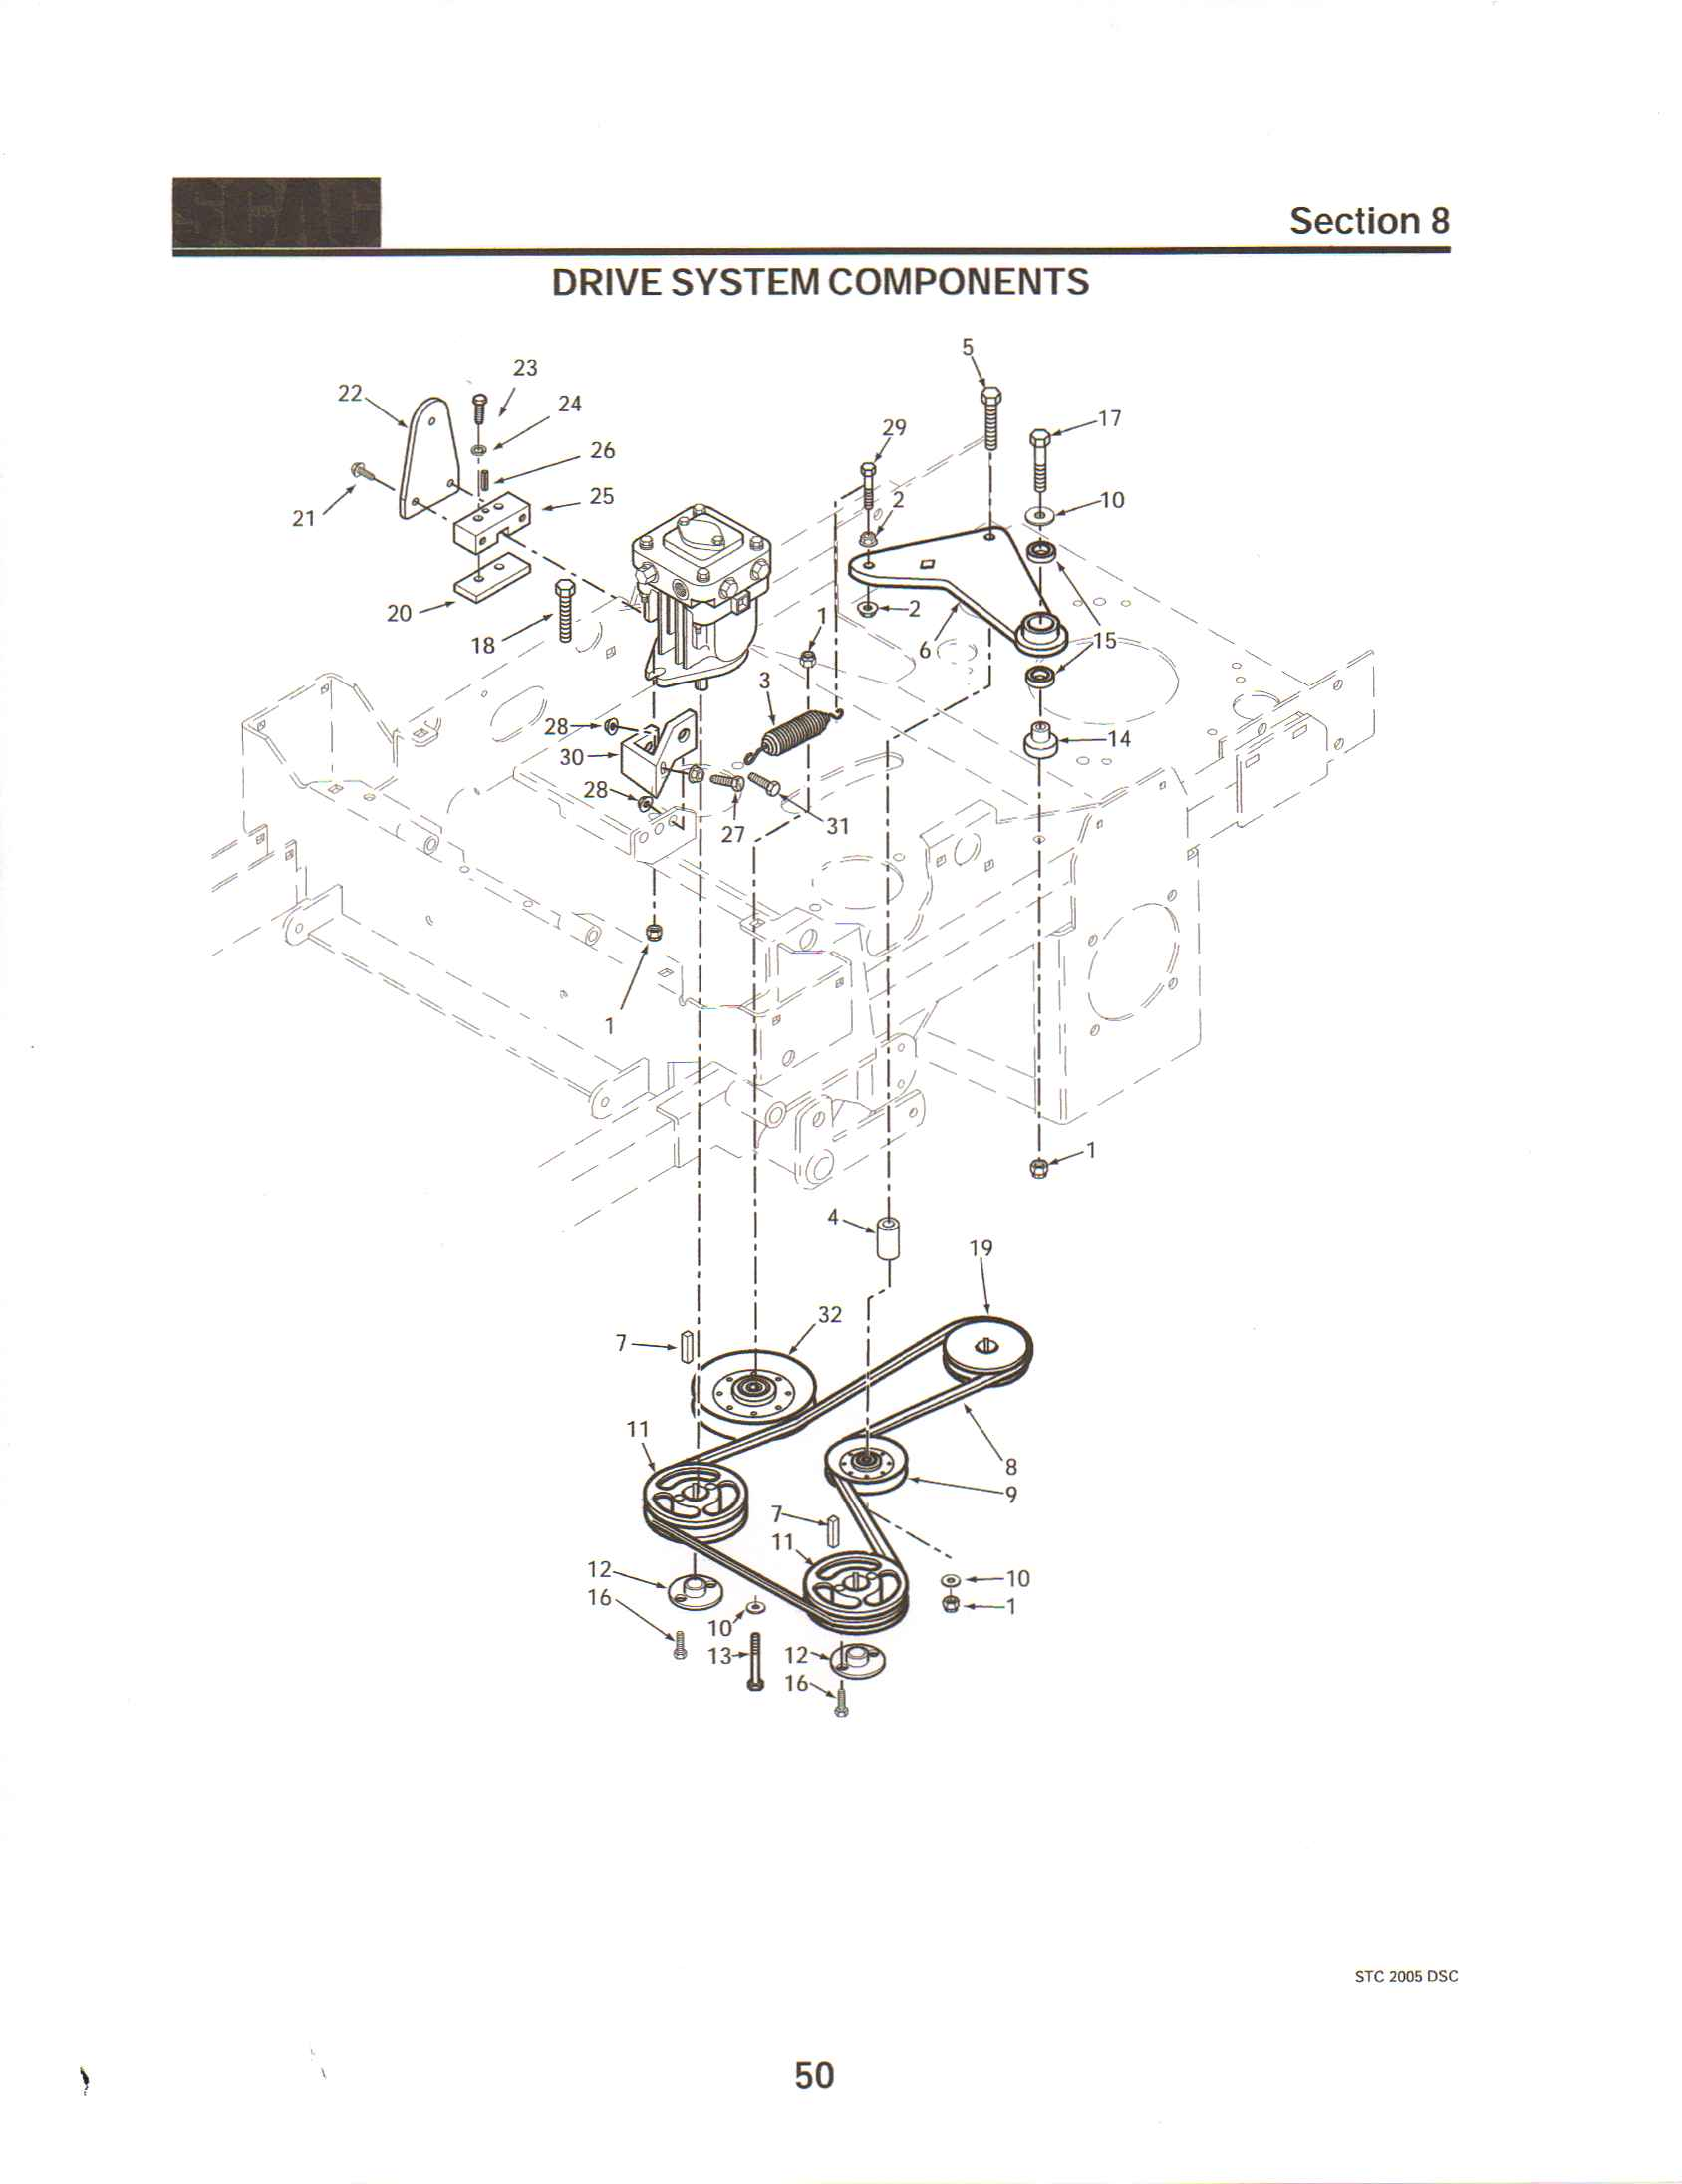 Lesco Lawn Mower Belt Diagram together with Wiring Diagram For A Cub Cadet Lt1042 in addition Wiring Diagram Troy Bilt Bronco Riding Mower further Watch in addition Exmark Wiring Diagrams. on scag mower wiring diagram